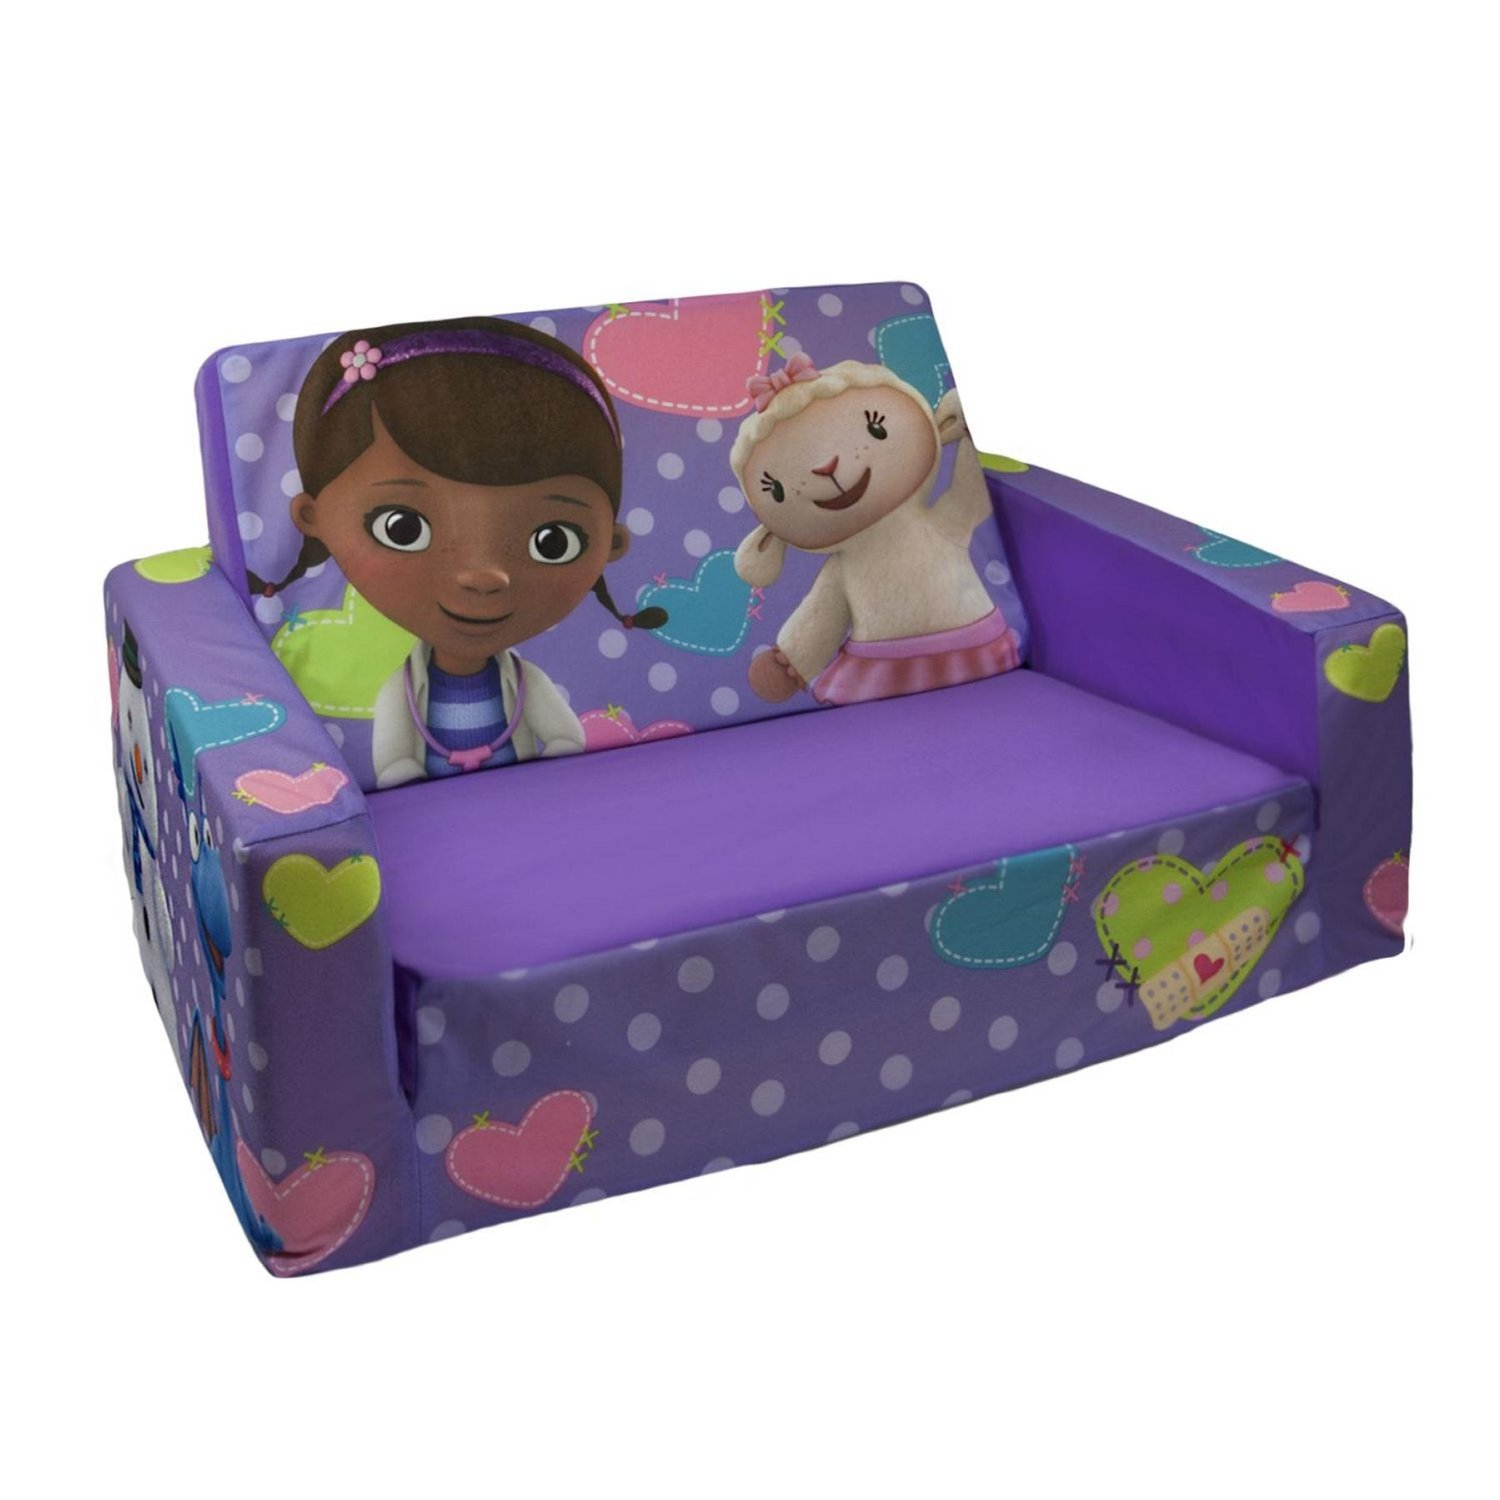 doc mcstuffins chair smyths covers xl furniture for the playroom and home